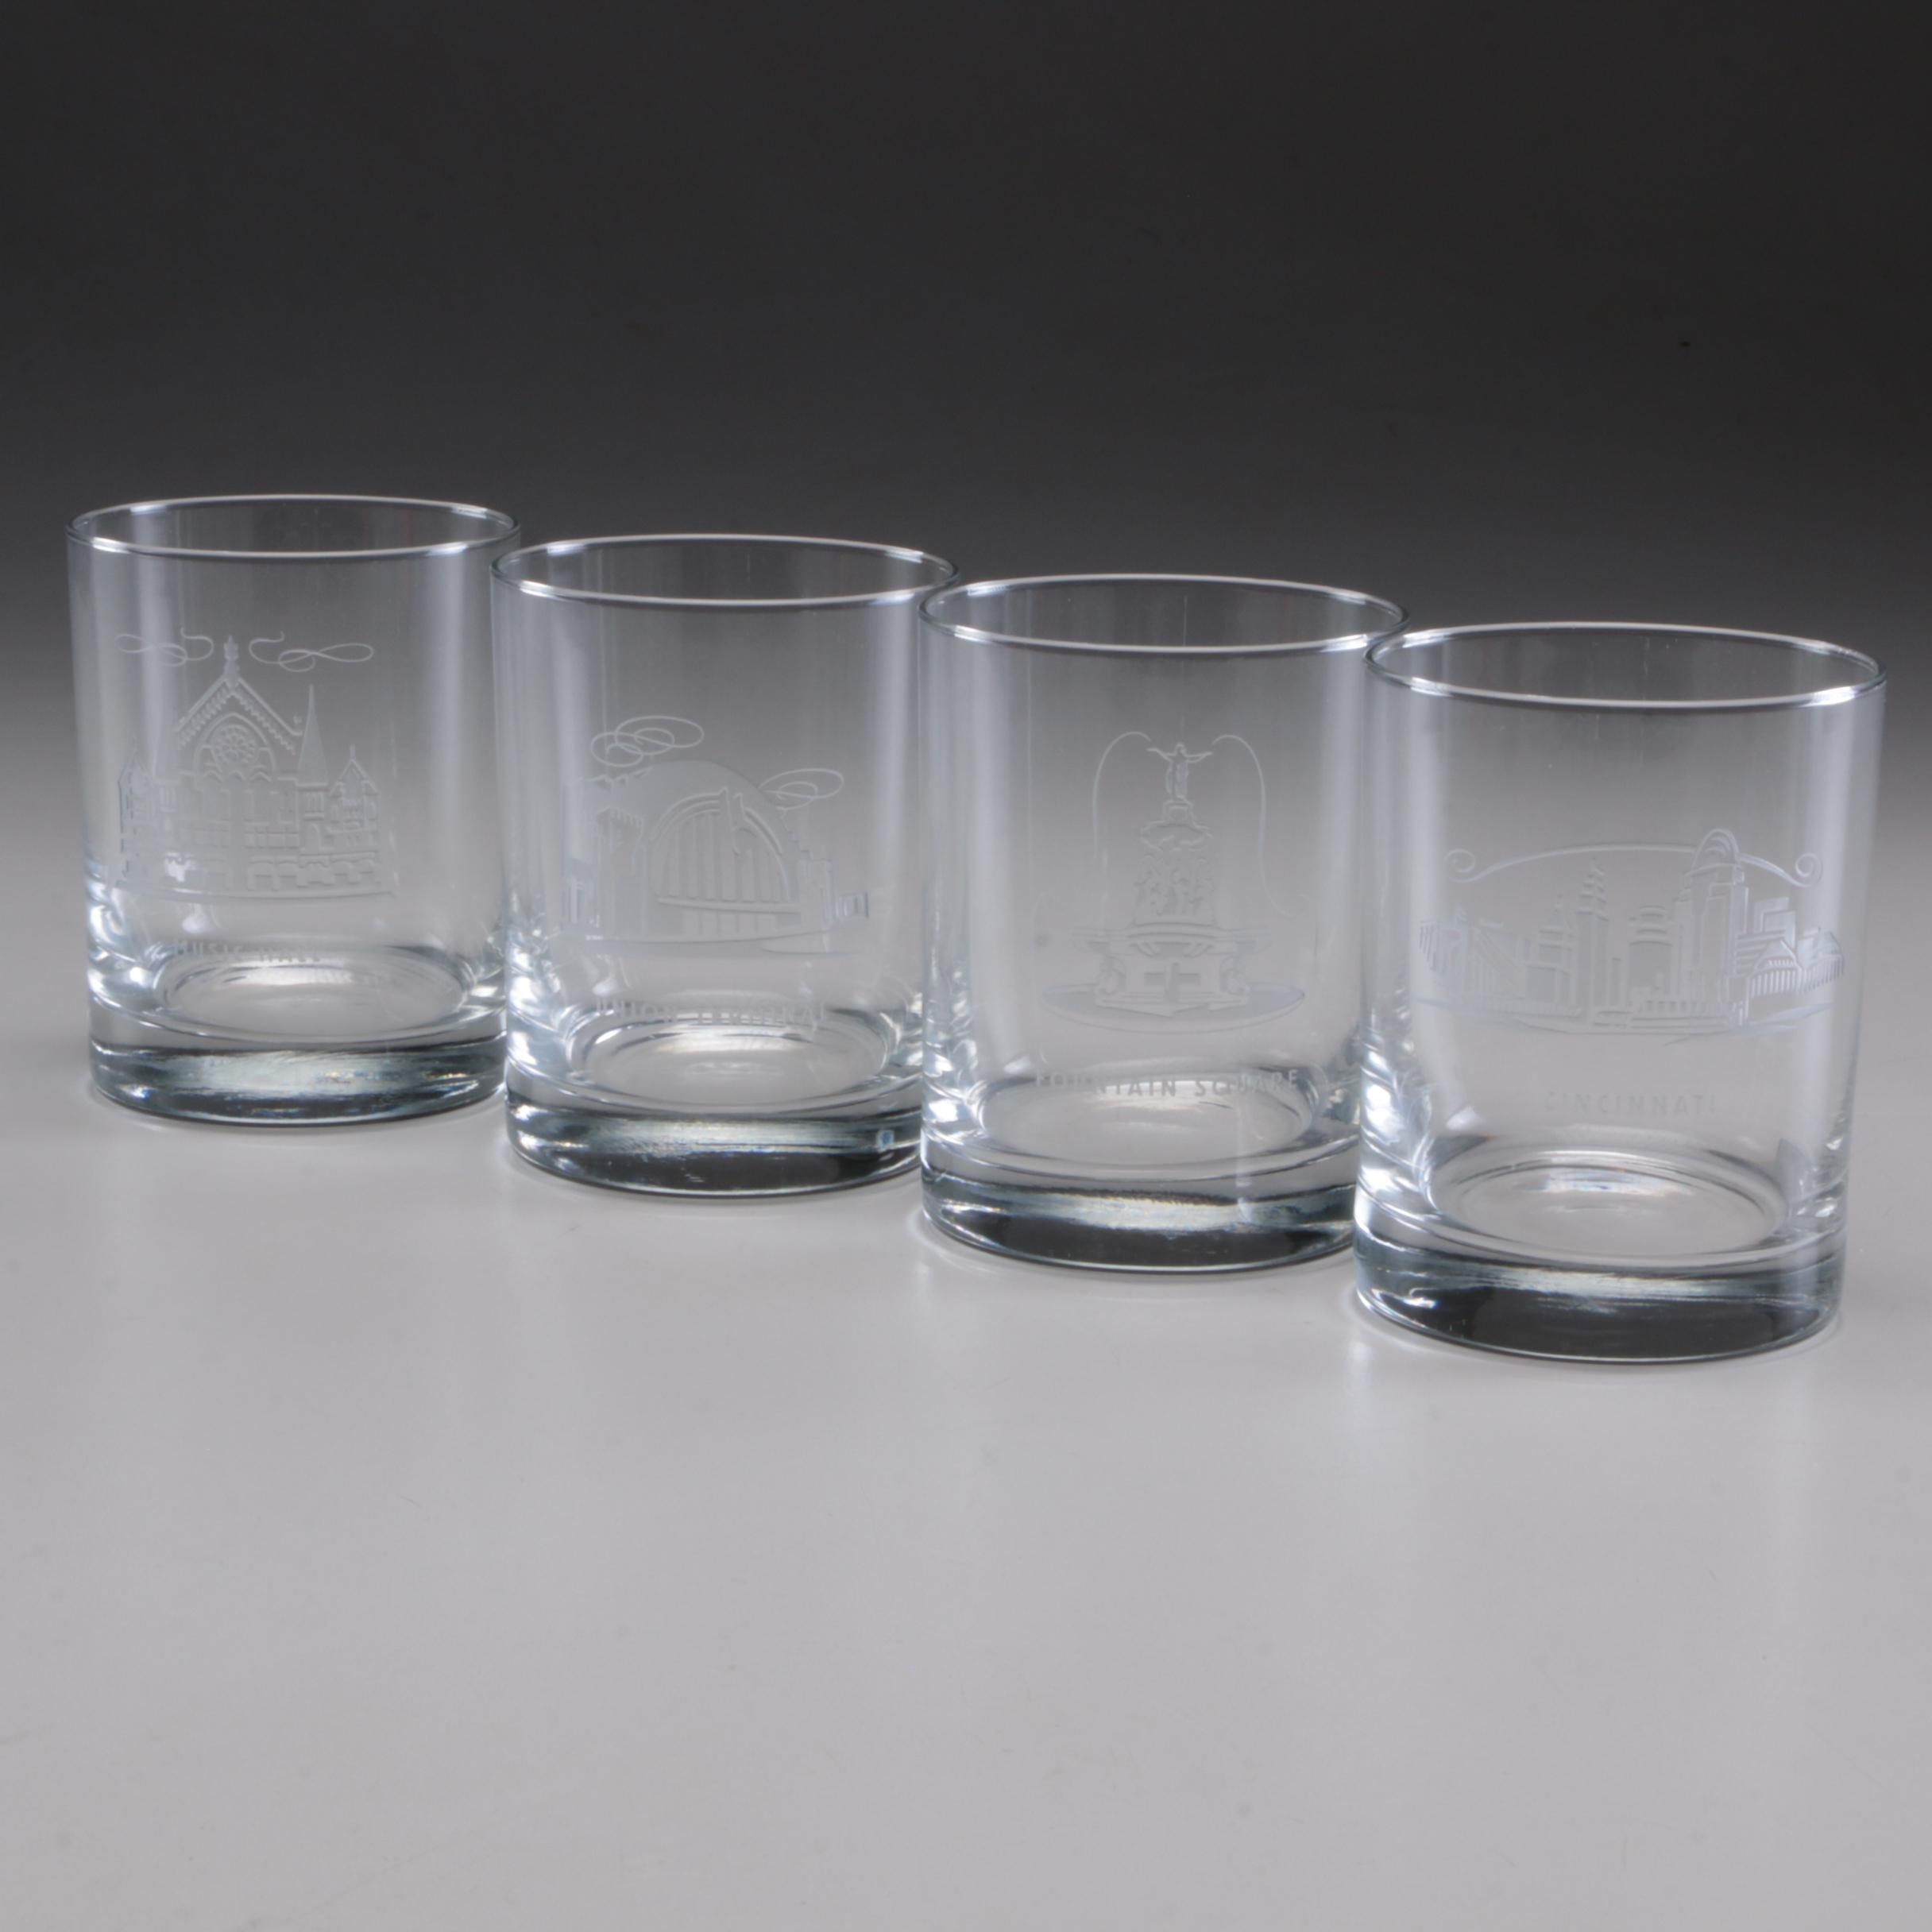 Sterling Cut Glass Tumblers Etched with Fountain Square, Late 20th Century